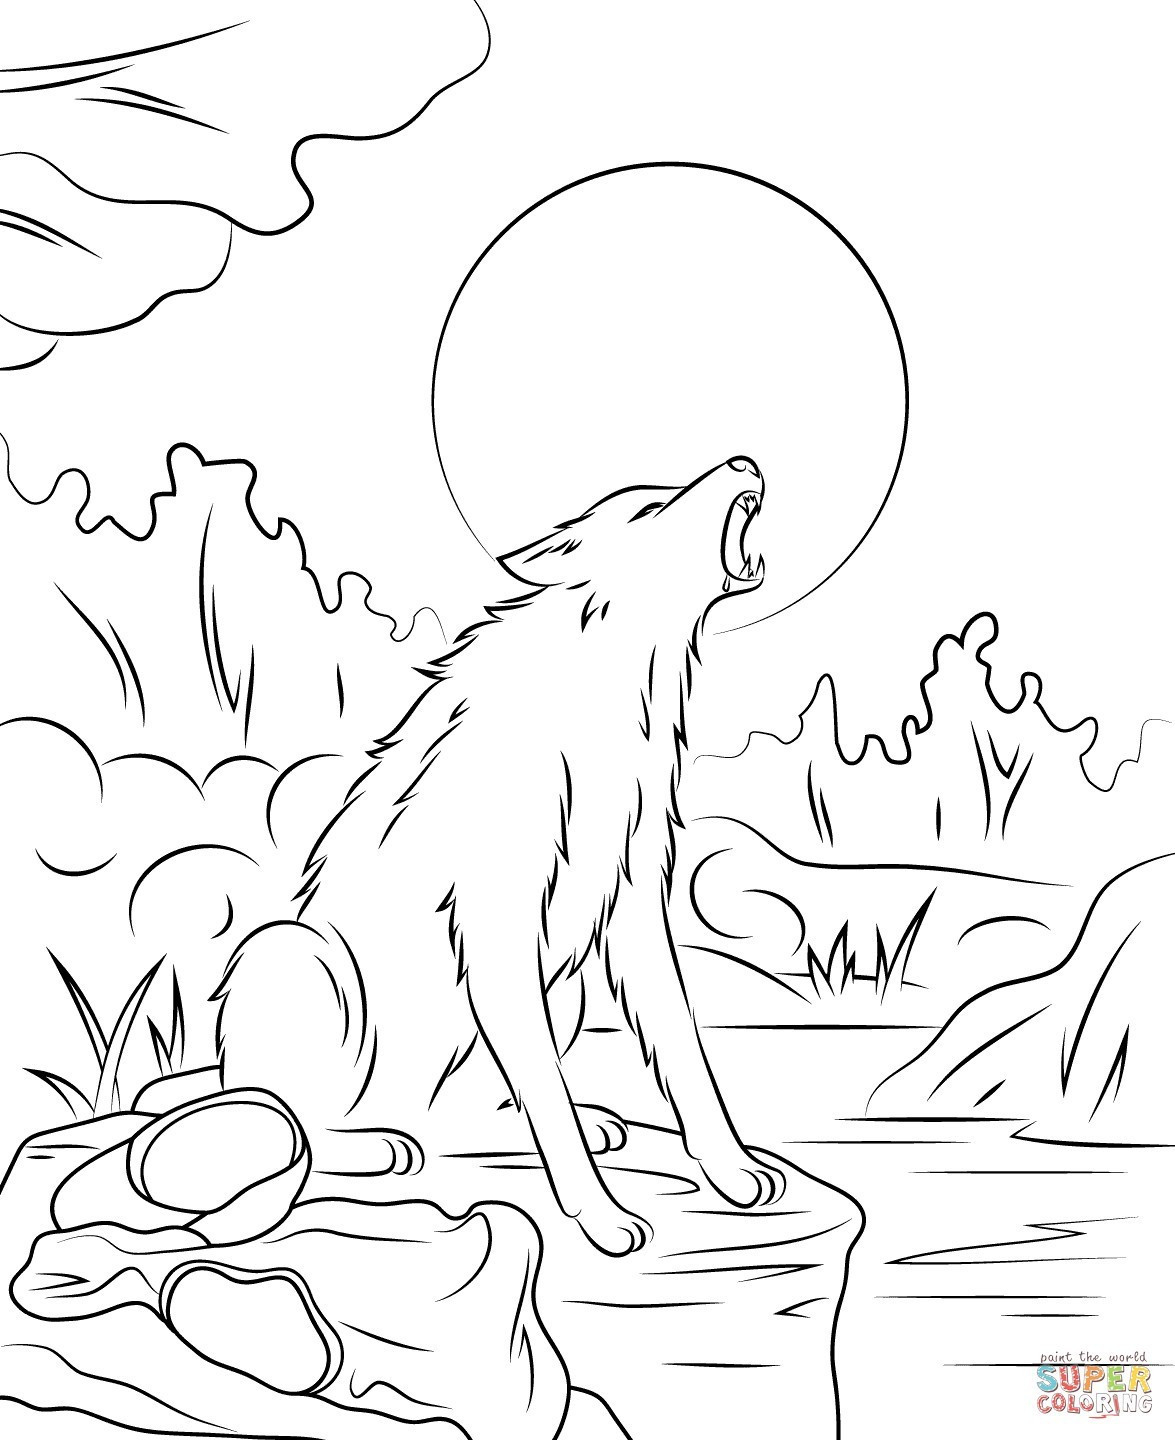 Werewolf Coloring Pages Best Of Scary Werewolf Coloring ...